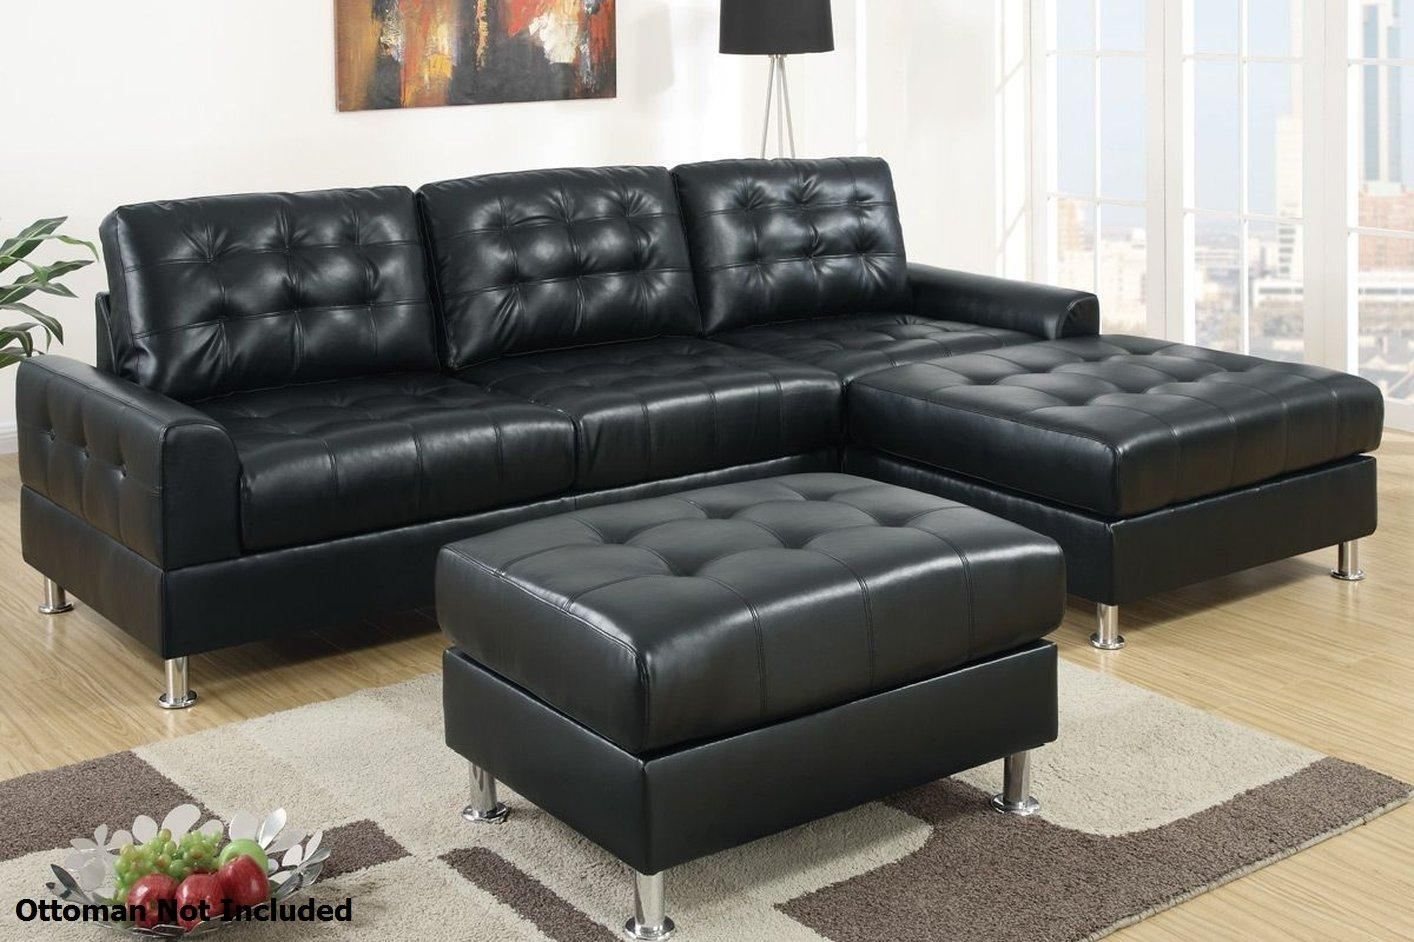 Chair And Sofa Covers | Tehranmix Decoration In Leather Sectional Sofas Toronto (Photo 7 of 20)